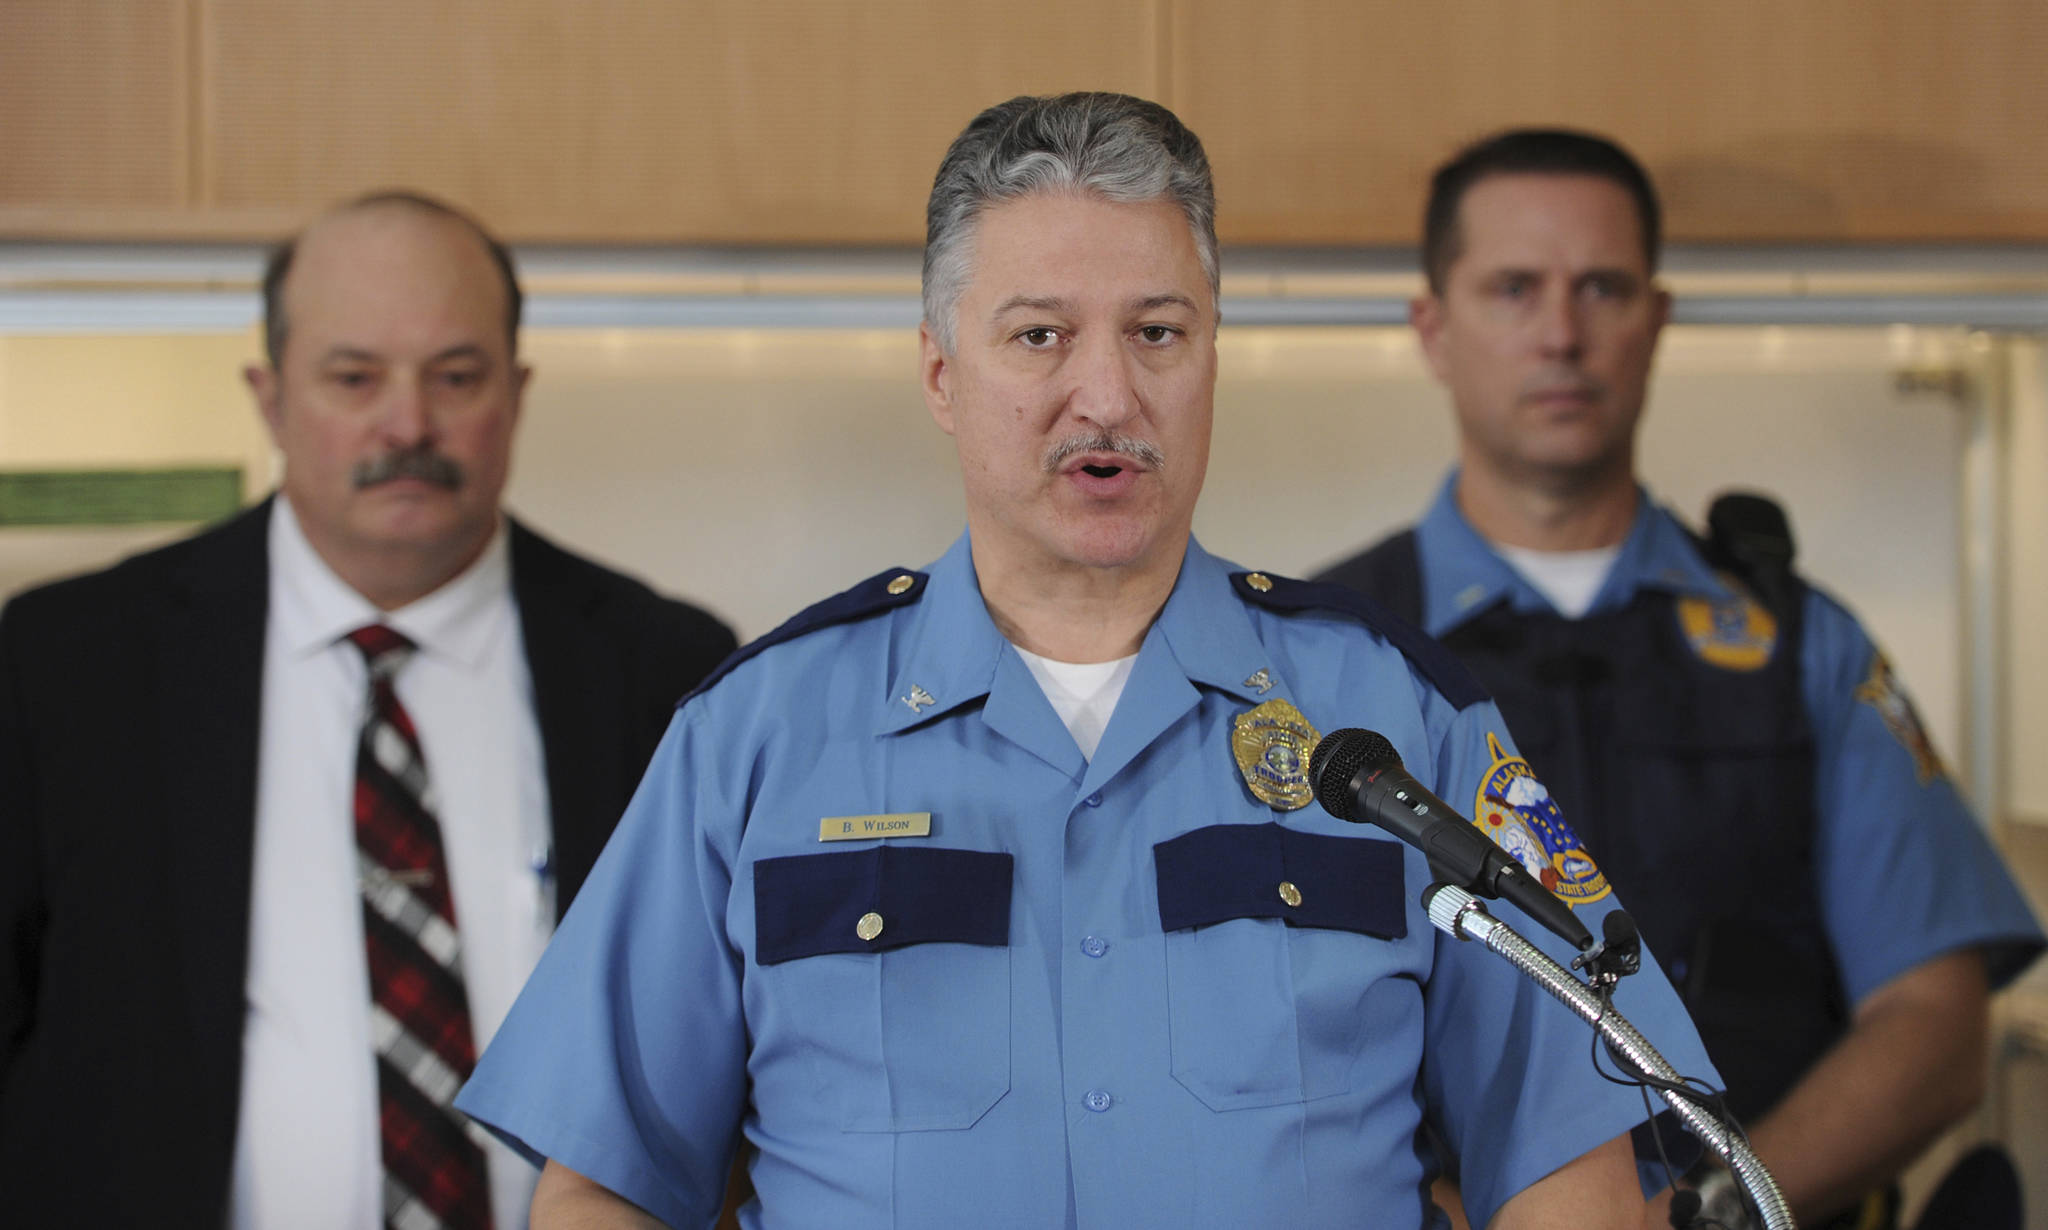 Alaska State Troopers Director Col. Barry Wilson, center, is flanked by Cold Case Investigator Randy McPherron, left, and Lt. Mike Ingram during the announcement on Tuesday, Sept. 3, 2019, in Anchorage, Alaska, that Oregon resident Donald F. McQuade, 62, has been arrested and charged with murdering teenager Shelley Connolly in a 1978 cold case. (Bill Roth/Anchorage Daily News via AP)